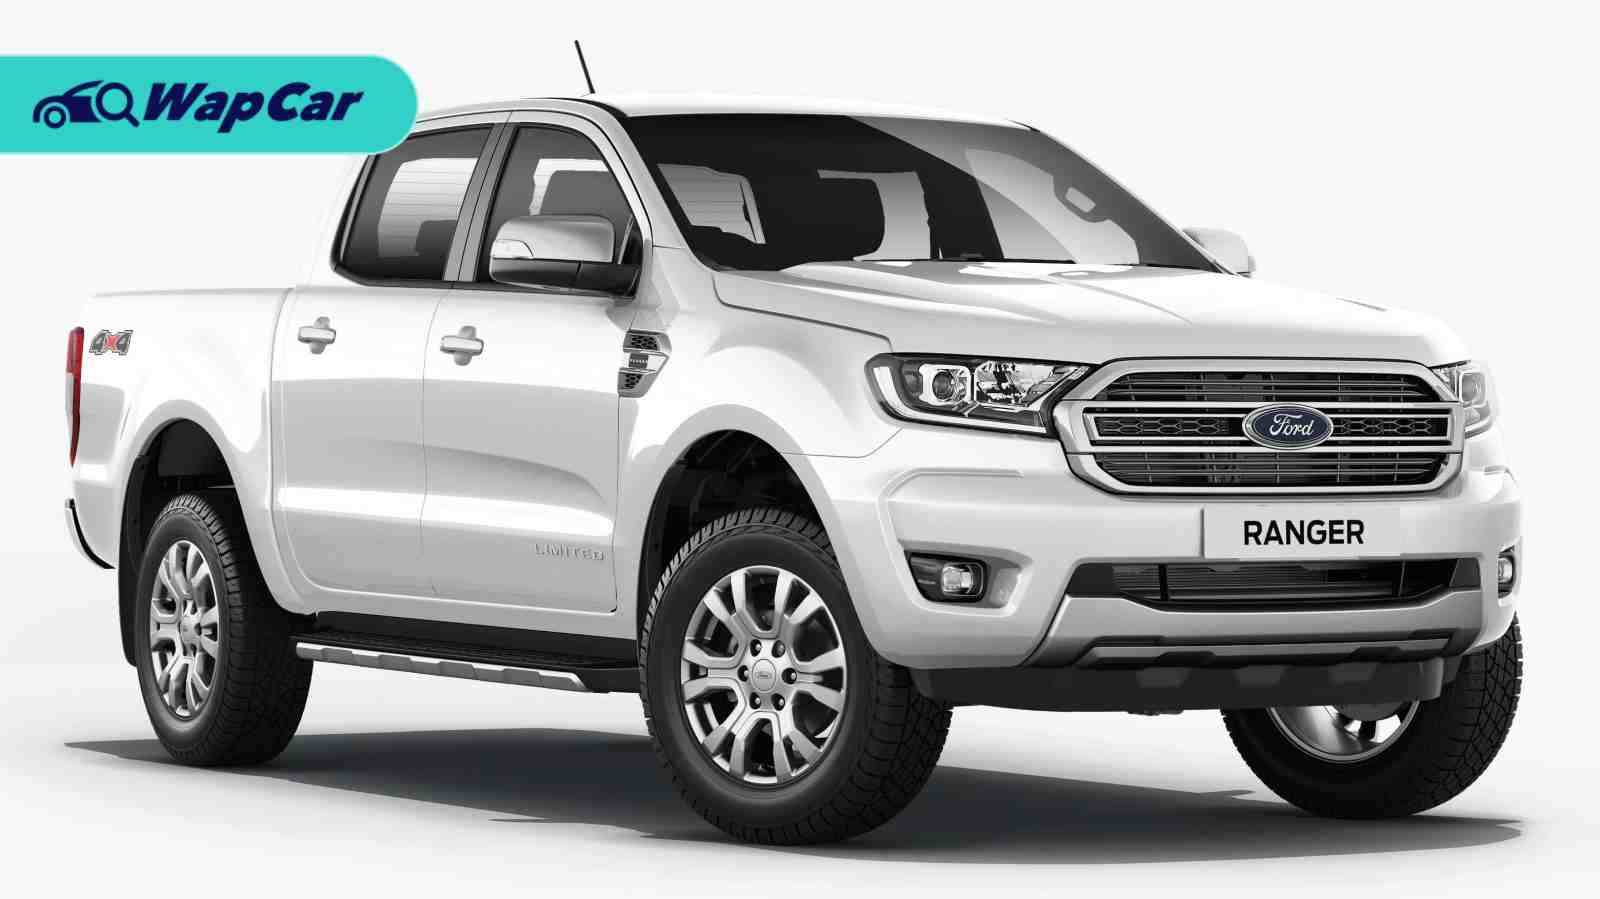 Ford Ranger XLT Plus facelifted in Malaysia! RM 129,888, new front design 01